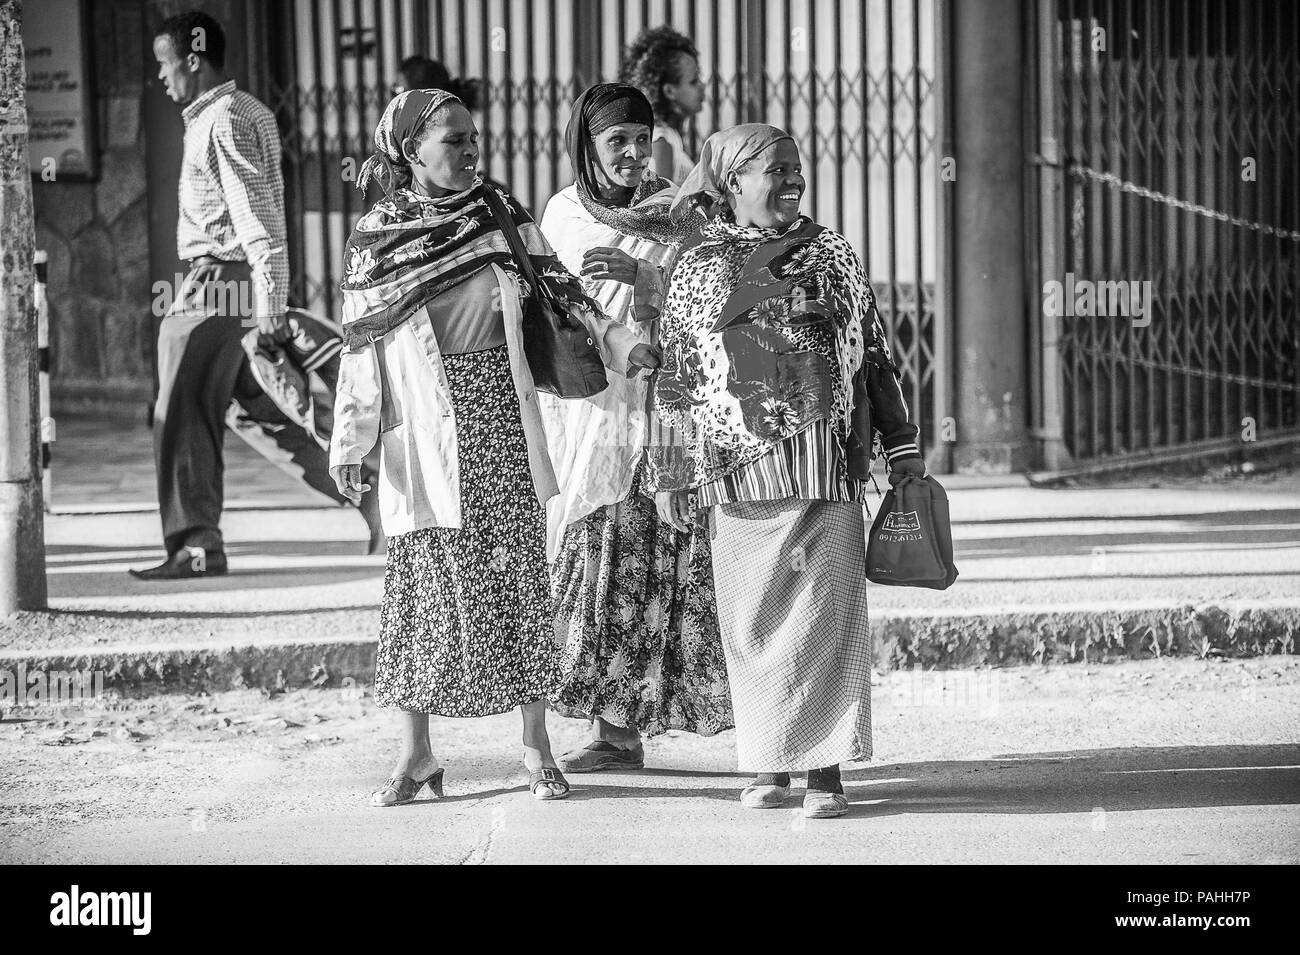 OMO, ETHIOPIA - SEPTEMBER 21, 2011: Unidentified Ethiopian women in the street. People in Ethiopia suffer of poverty due to the unstable situation - Stock Image